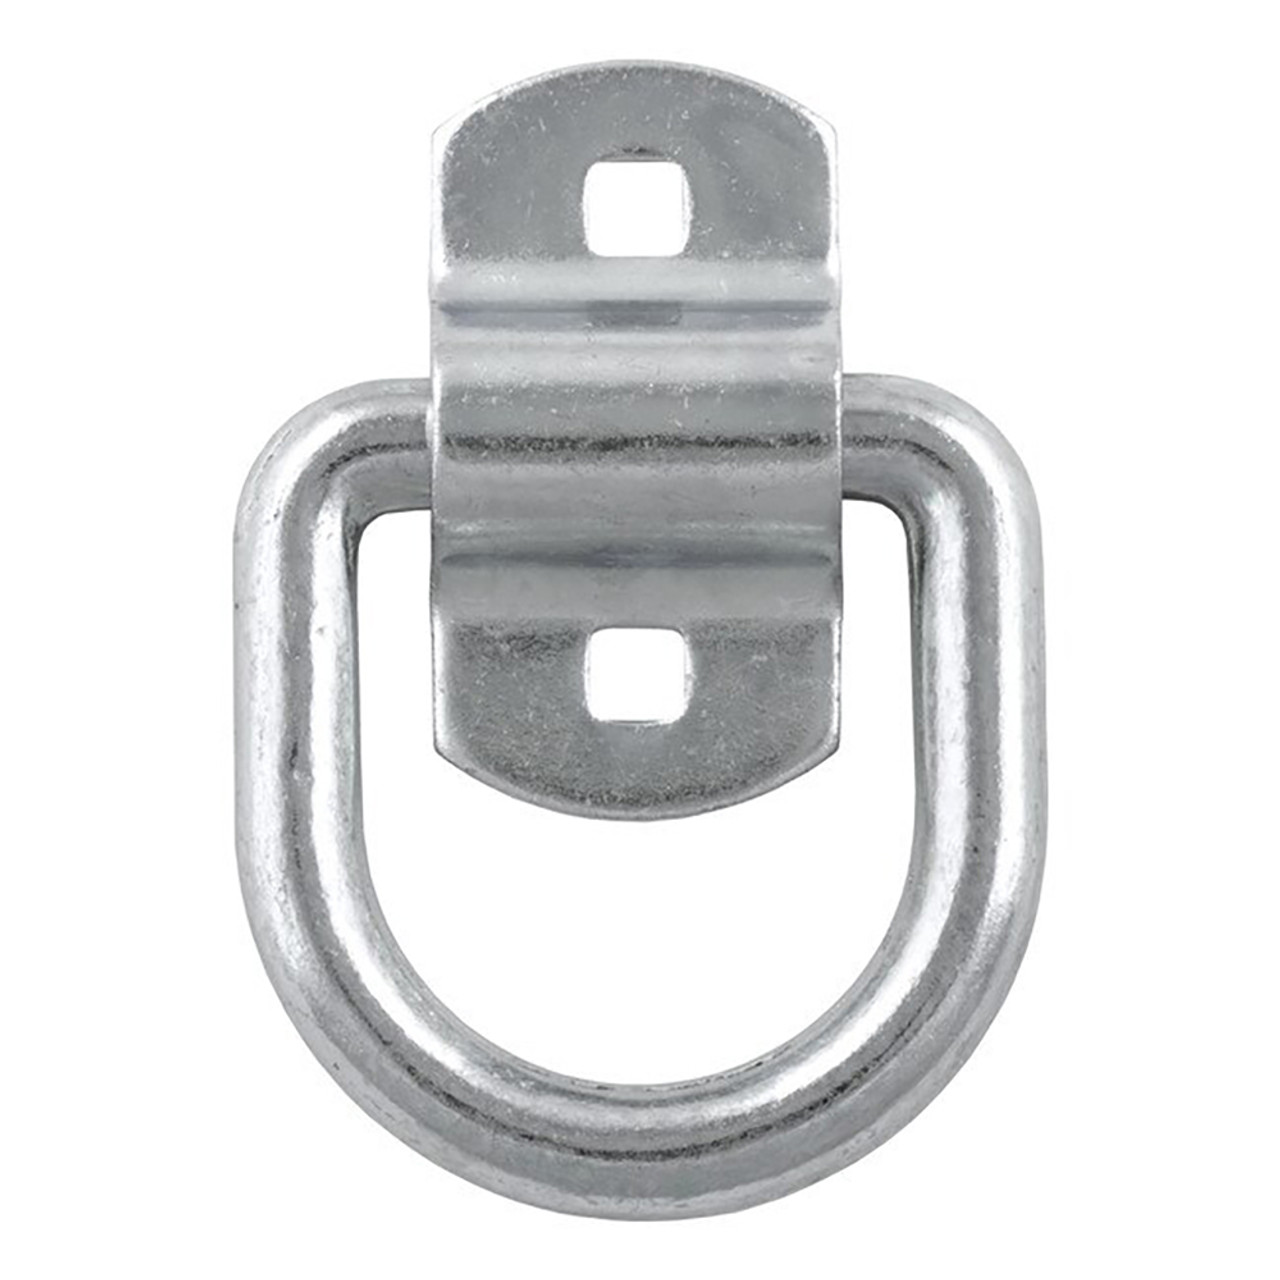 """Forged 1/2"""" D-Ring with Bracket- 11,000 lbs Capacity- 2-1/2"""" x 2-3/8"""" ID- White Zinc Finish-"""